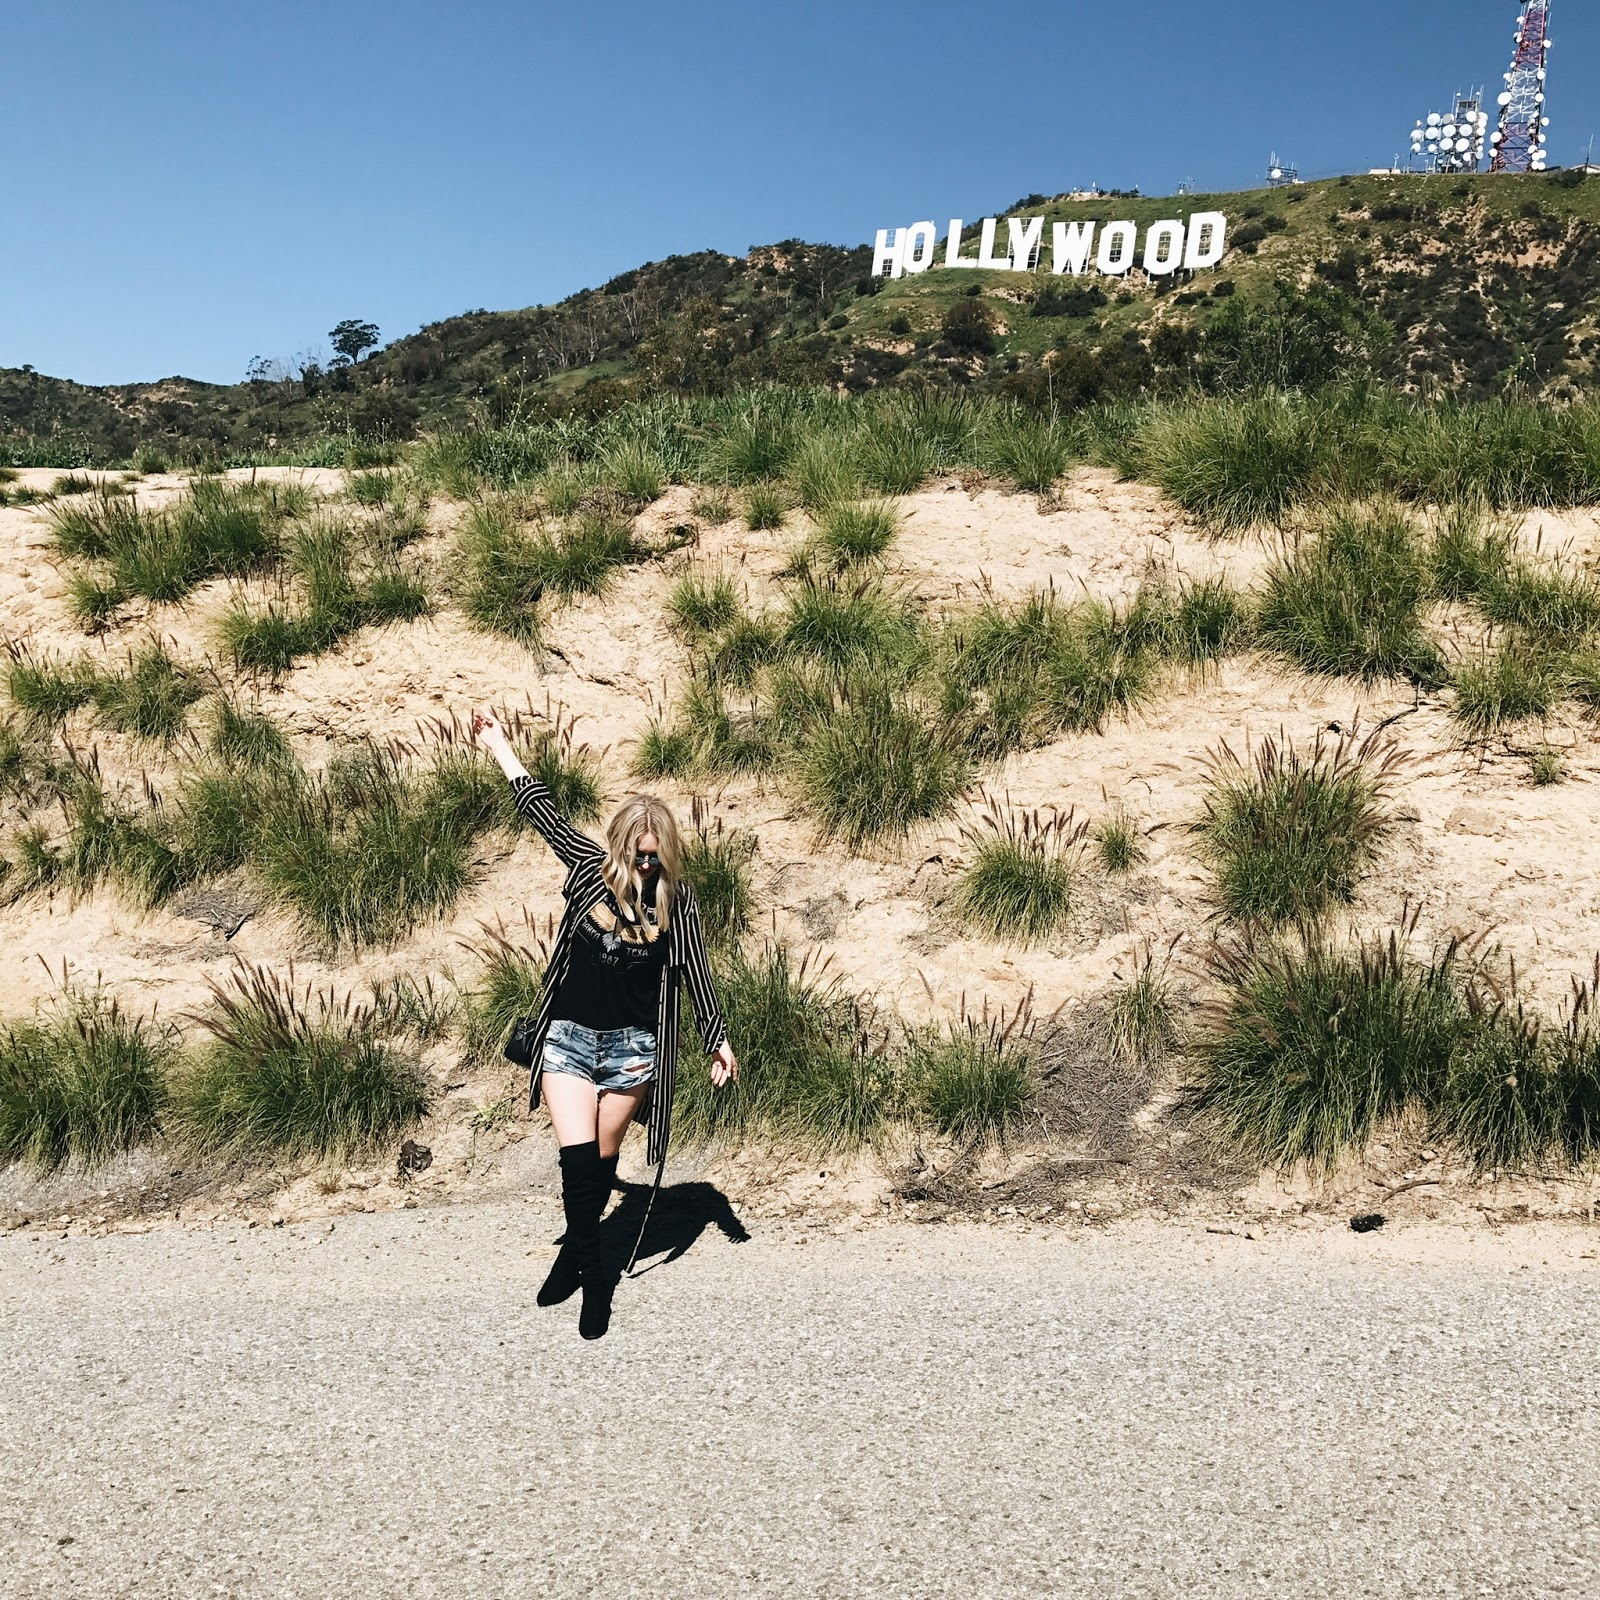 Cathclaire's Hollywood Bachelorette